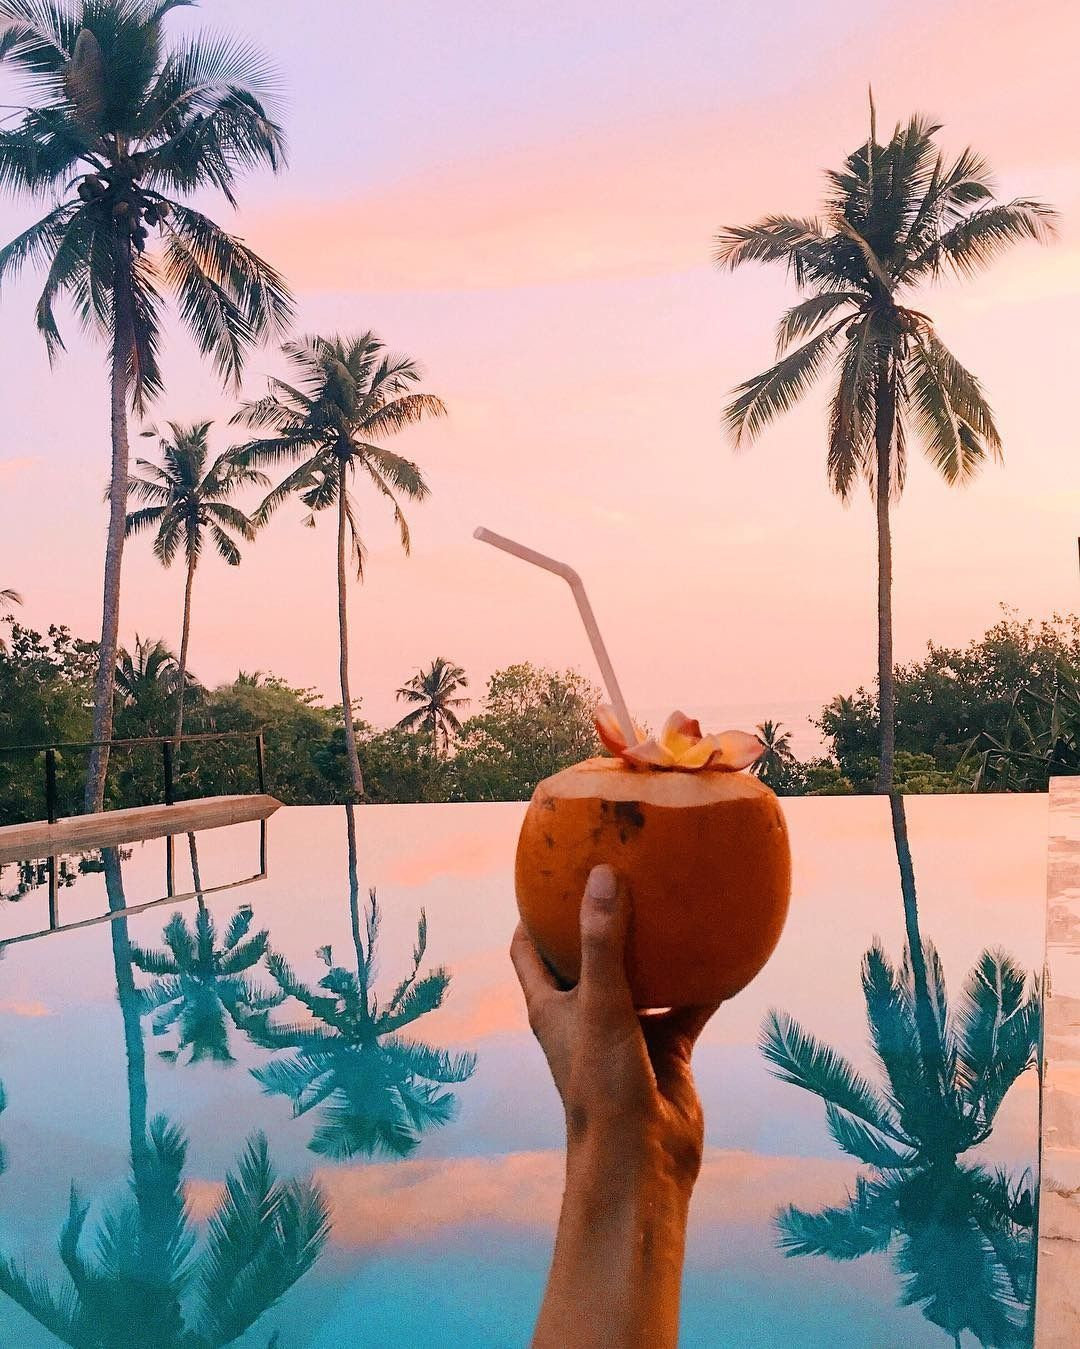 sunsets & coconuts are always a good idea